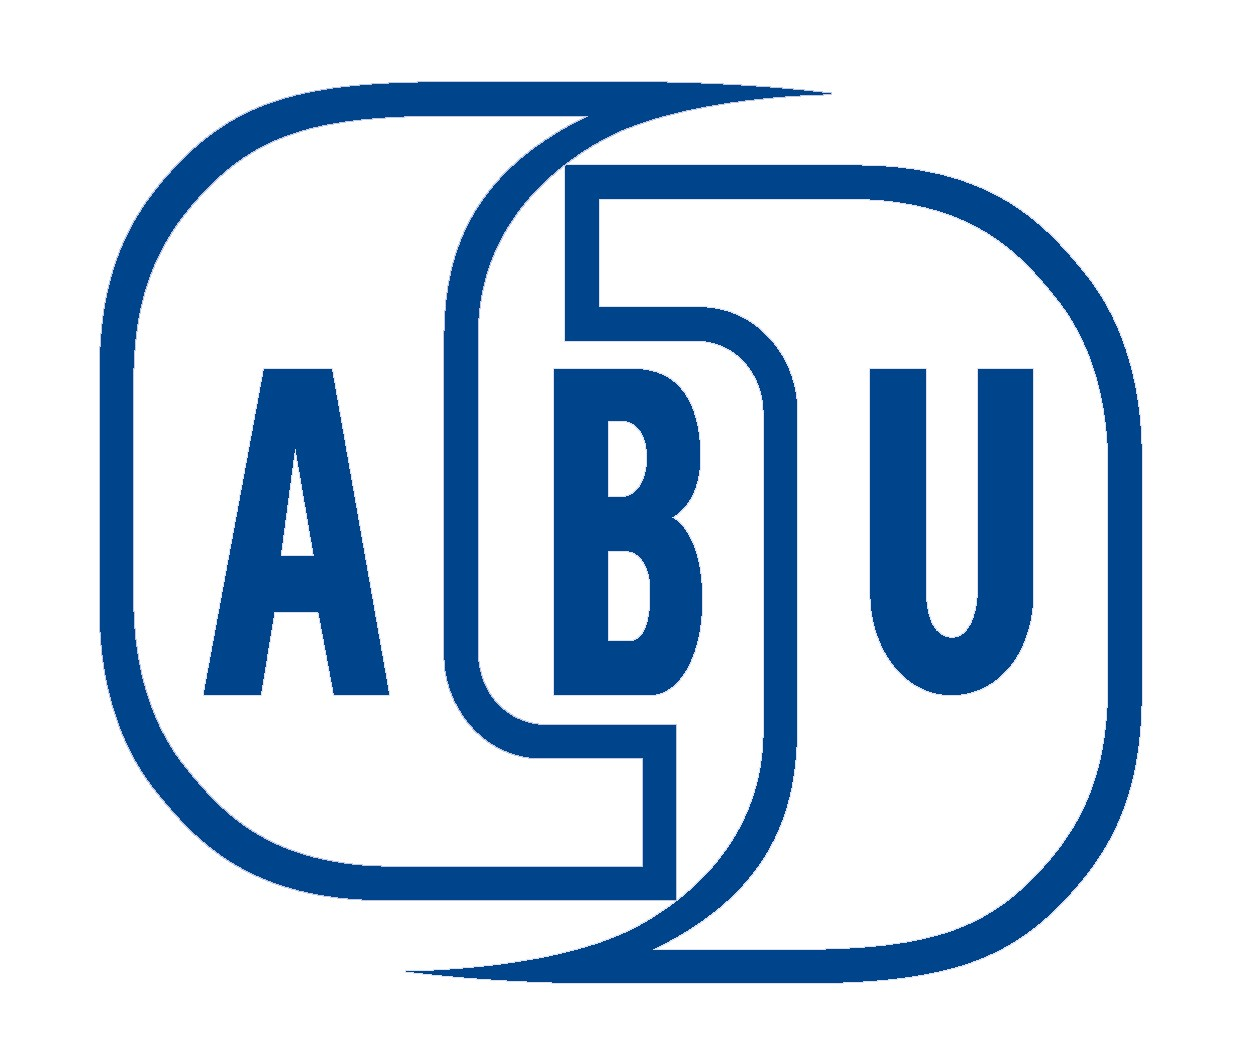 logo for Asia-Pacific Broadcasting Union